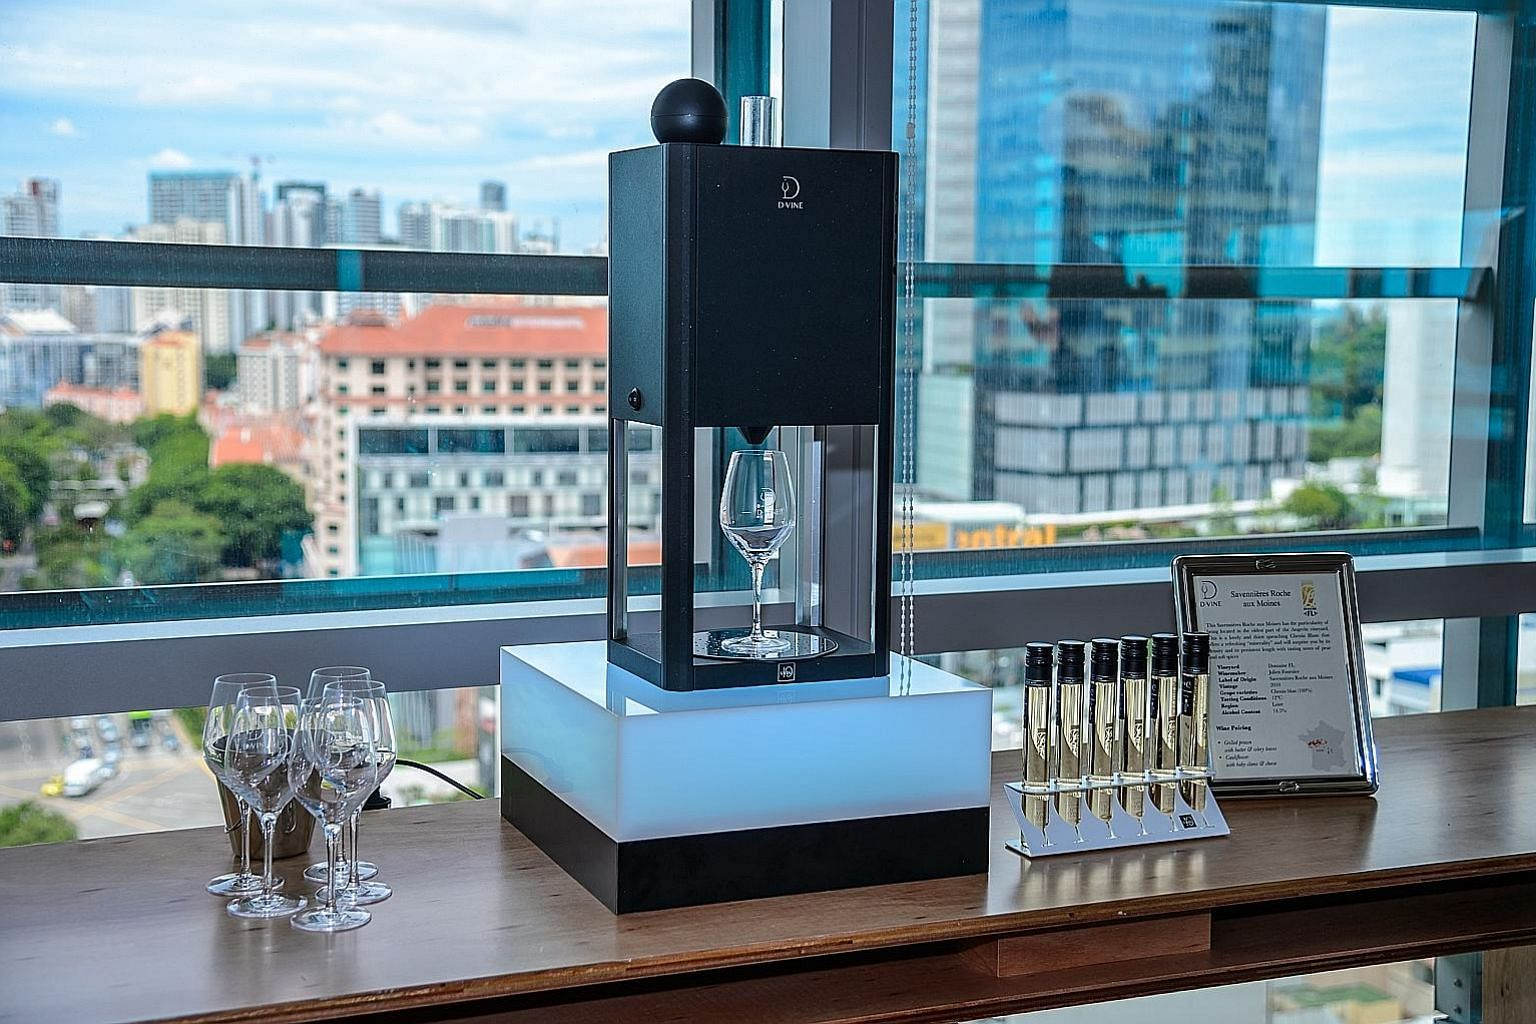 The D-Vine dispenses pre-packed 100ml servings of wine at the appropriate temperature and aeration. Coravin chief executive officer Frederic Levy can enjoy wine tasting at every dinner with the wine dispenser as corks reseal when the needle is remove